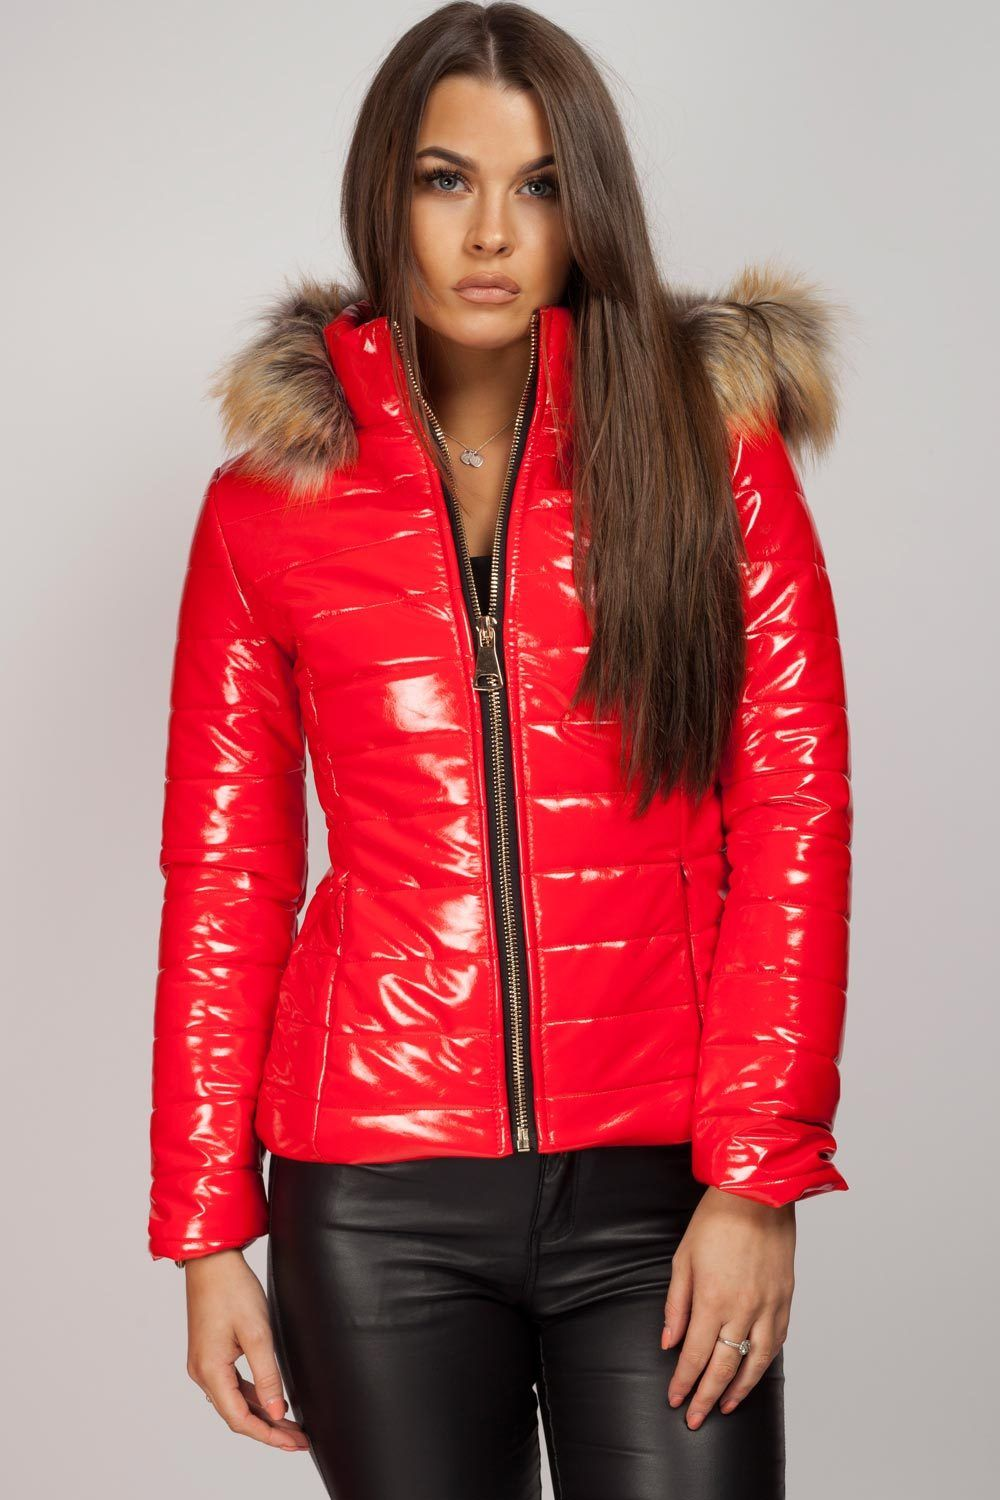 Wet Look Puffer Coat With Faux Fur Hood Red Puffer Jacket Puffer Jacket Women Faux Fur Hood [ 1500 x 1000 Pixel ]